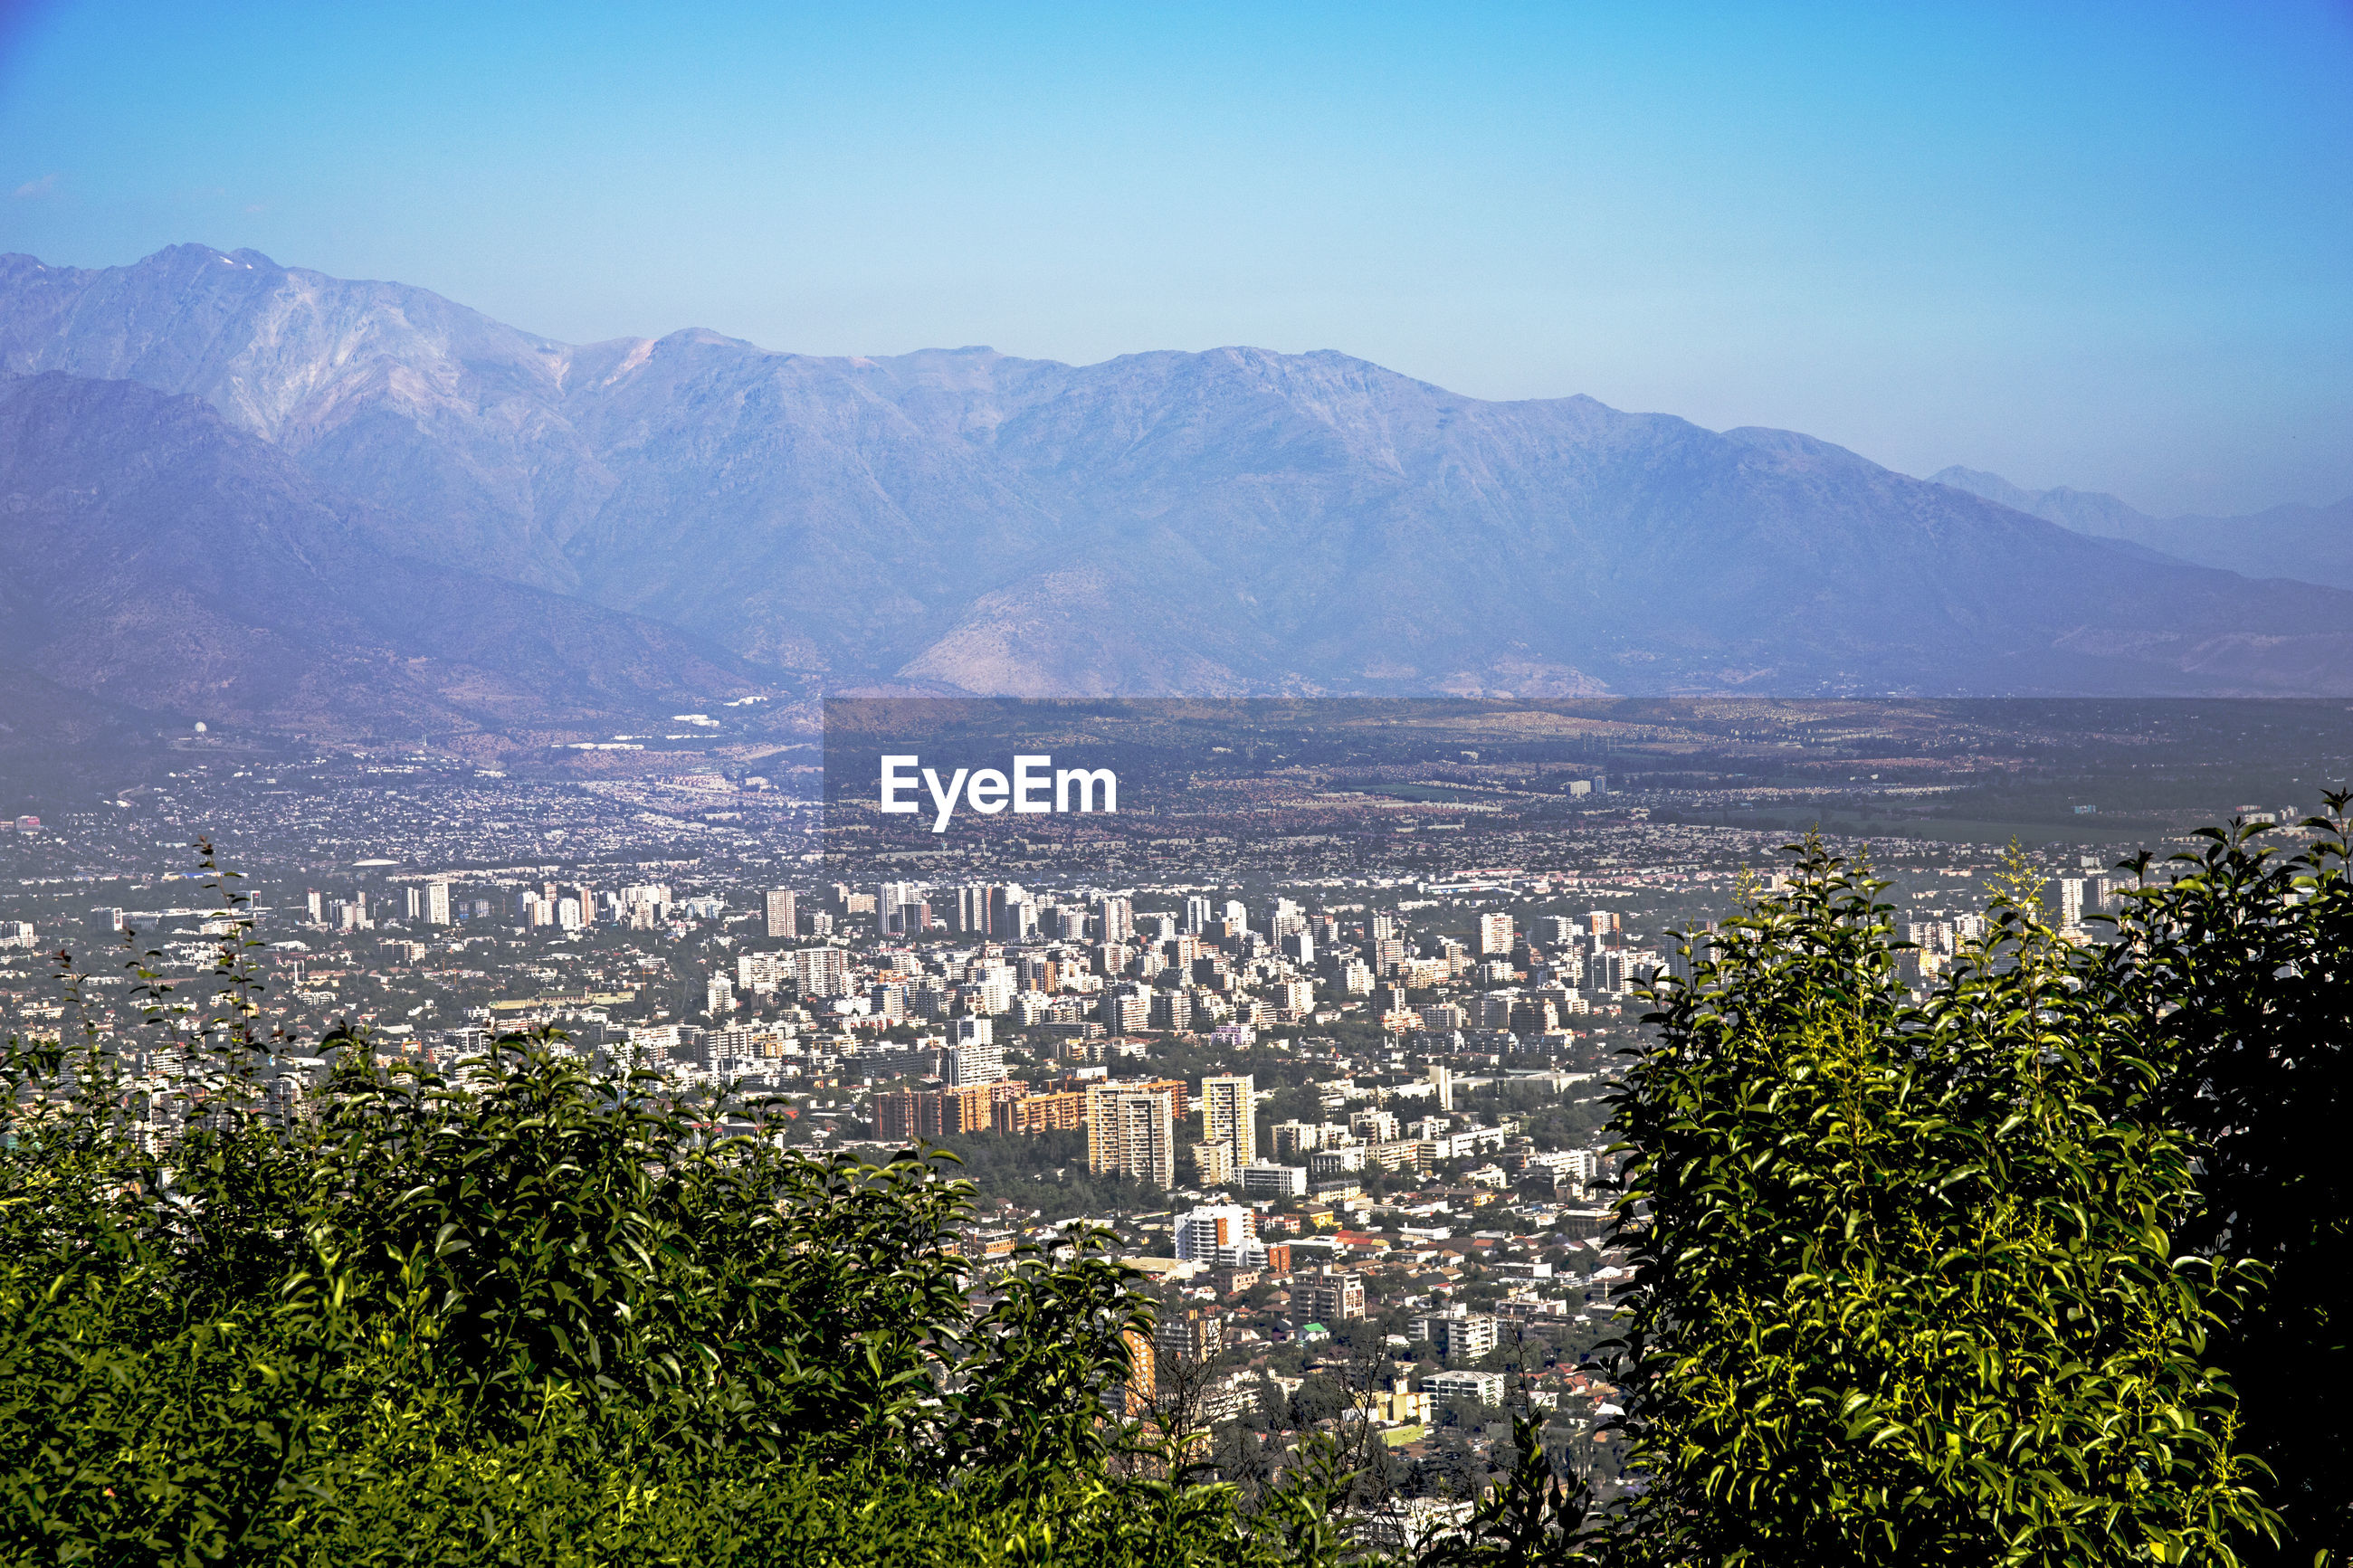 mountain, cityscape, architecture, built structure, building exterior, city, day, high angle view, no people, outdoors, mountain range, tree, clear sky, nature, sky